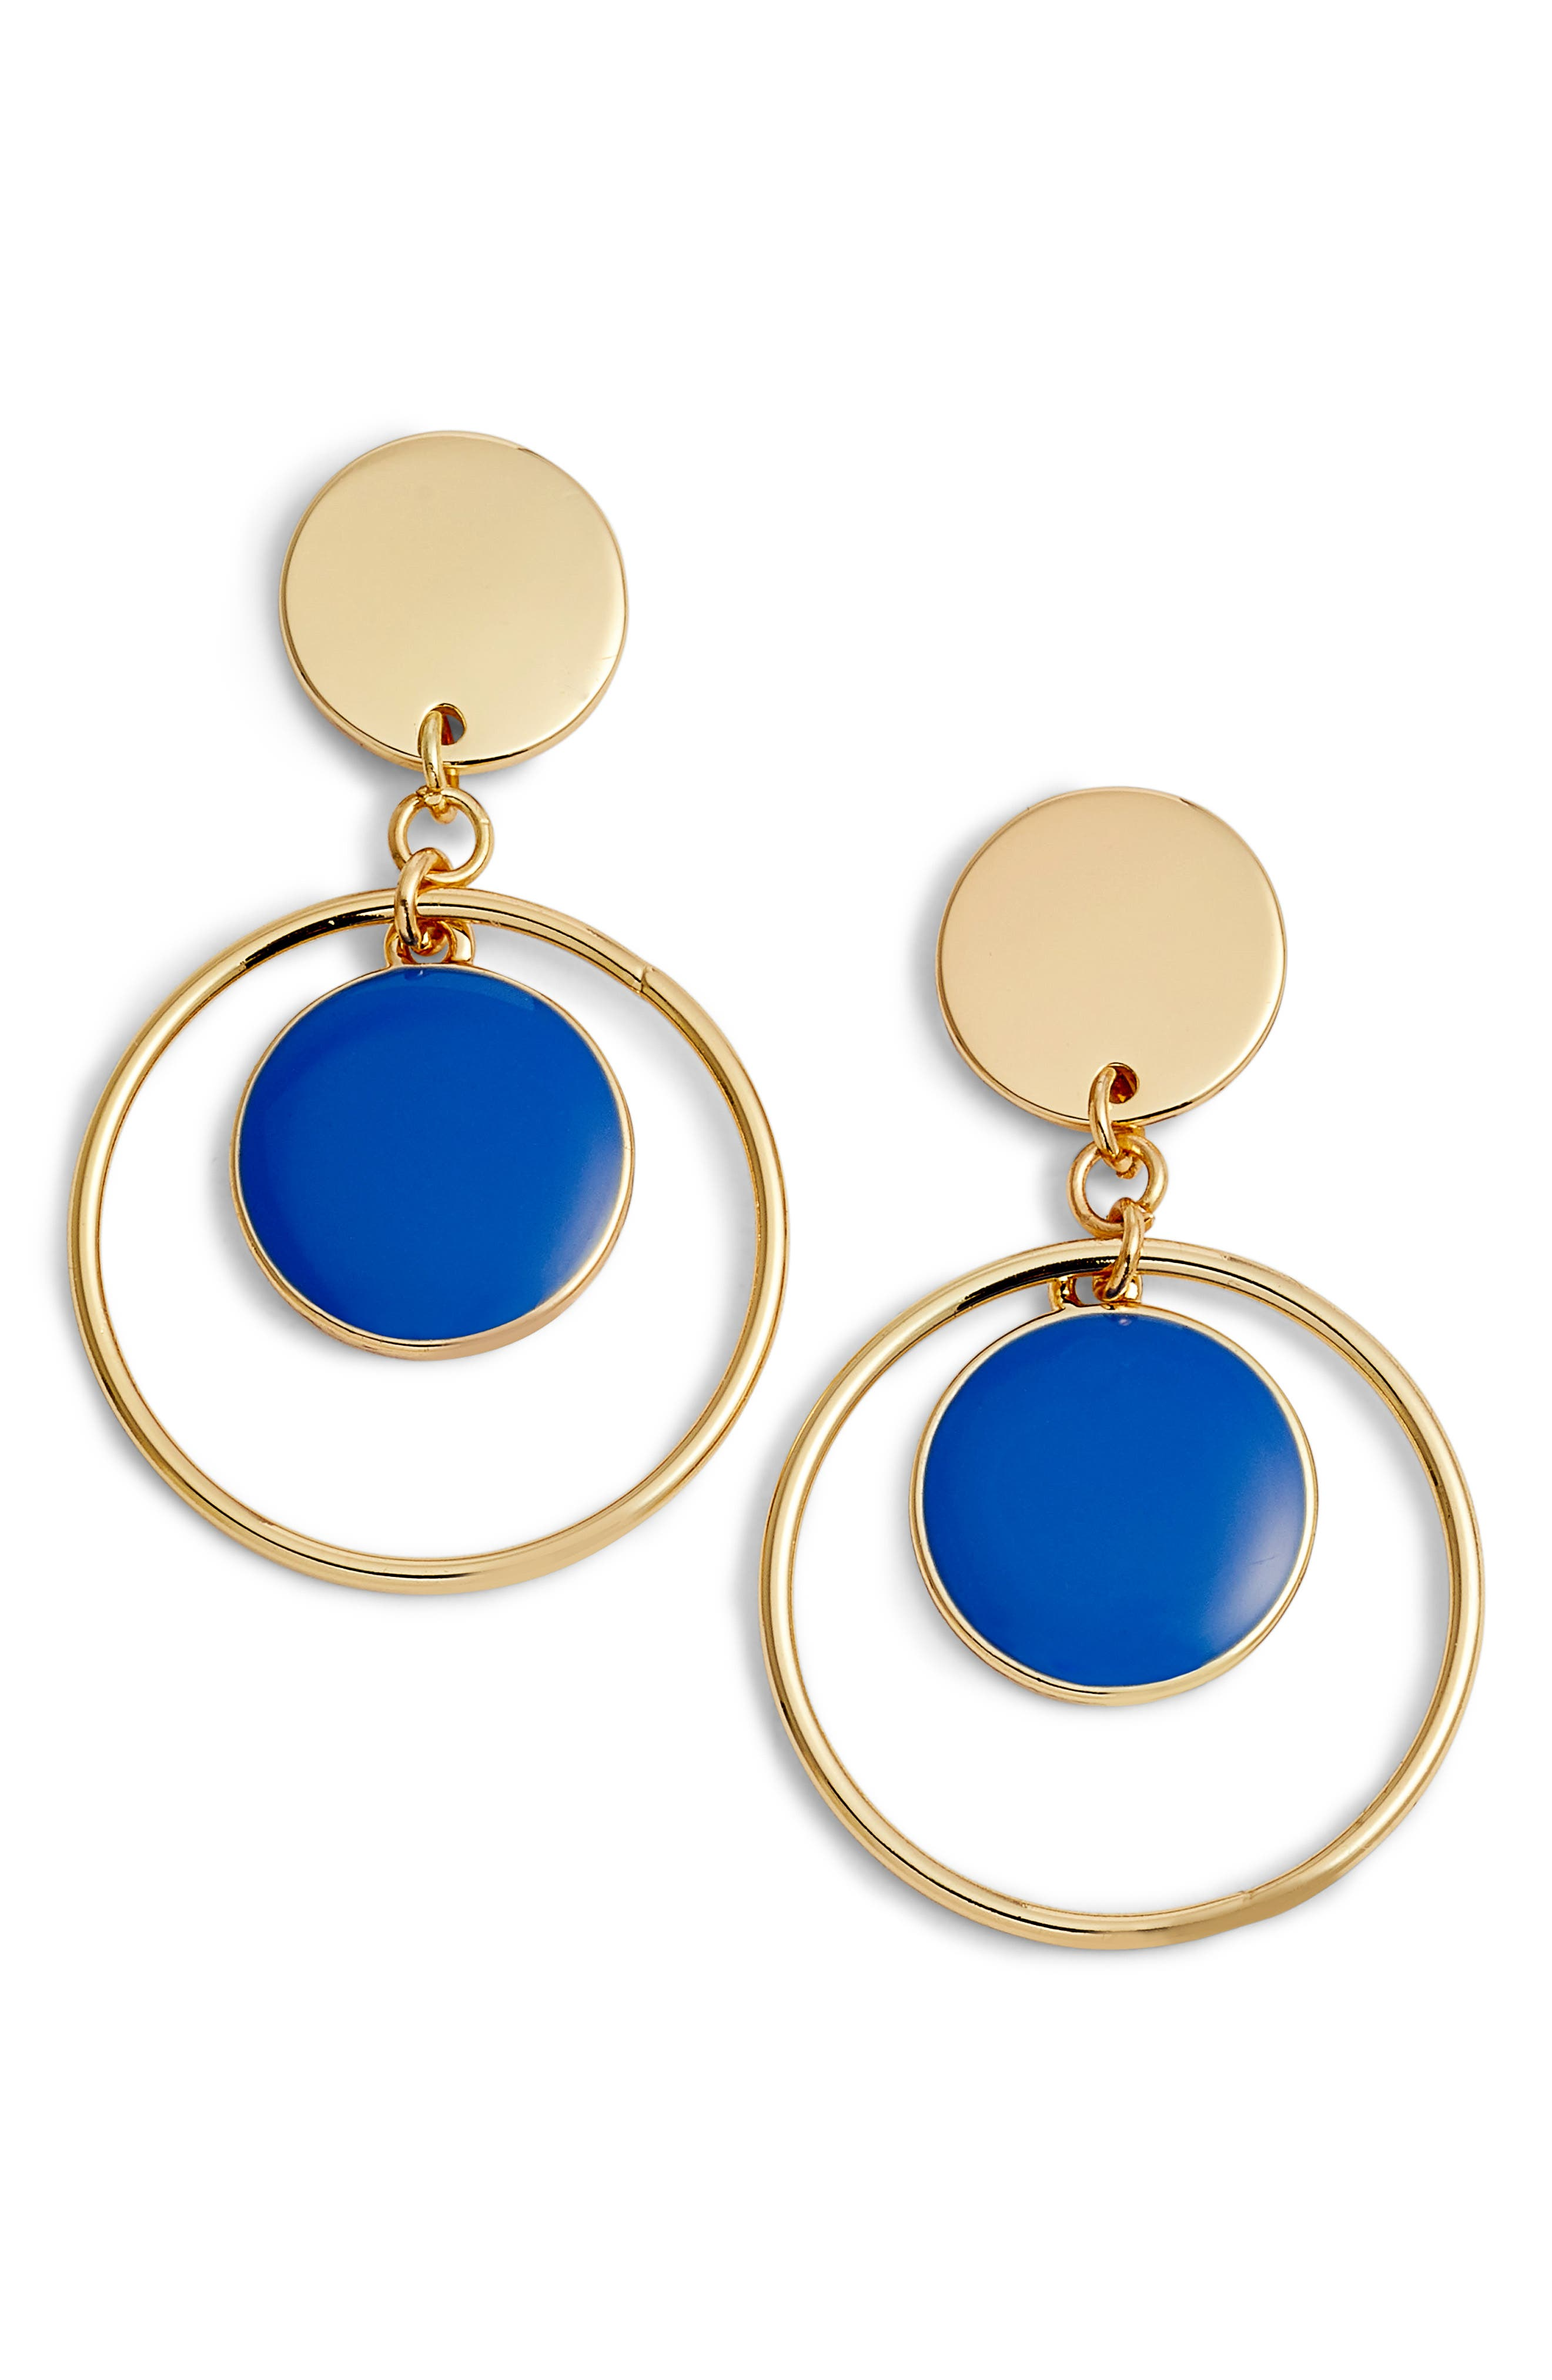 Double Disc with Hoop Drop Earrings,                             Main thumbnail 1, color,                             425